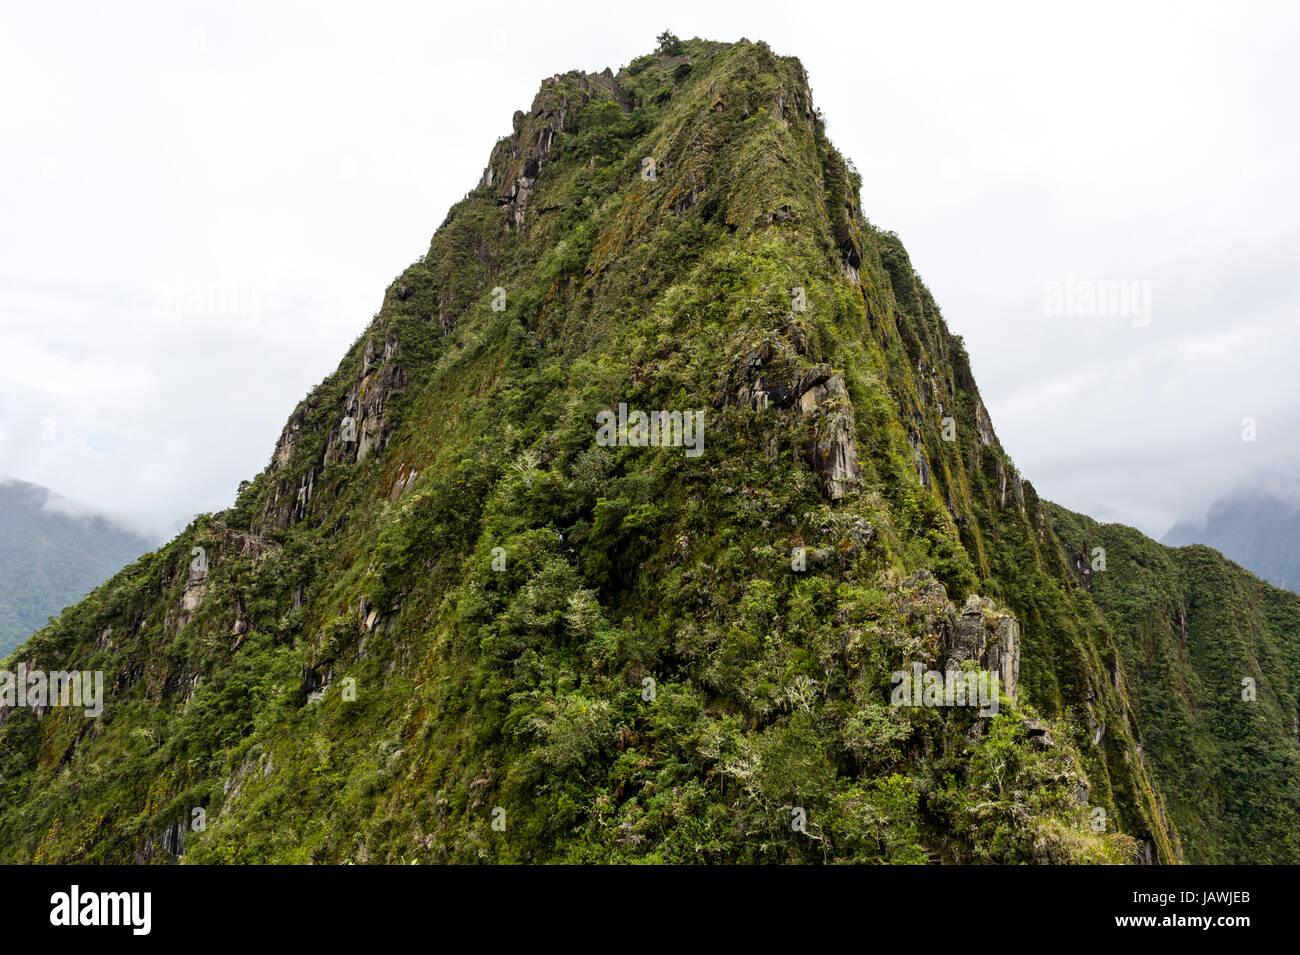 The sheer jagged peak of Huayna Picchu covered in forest. - Stock Image